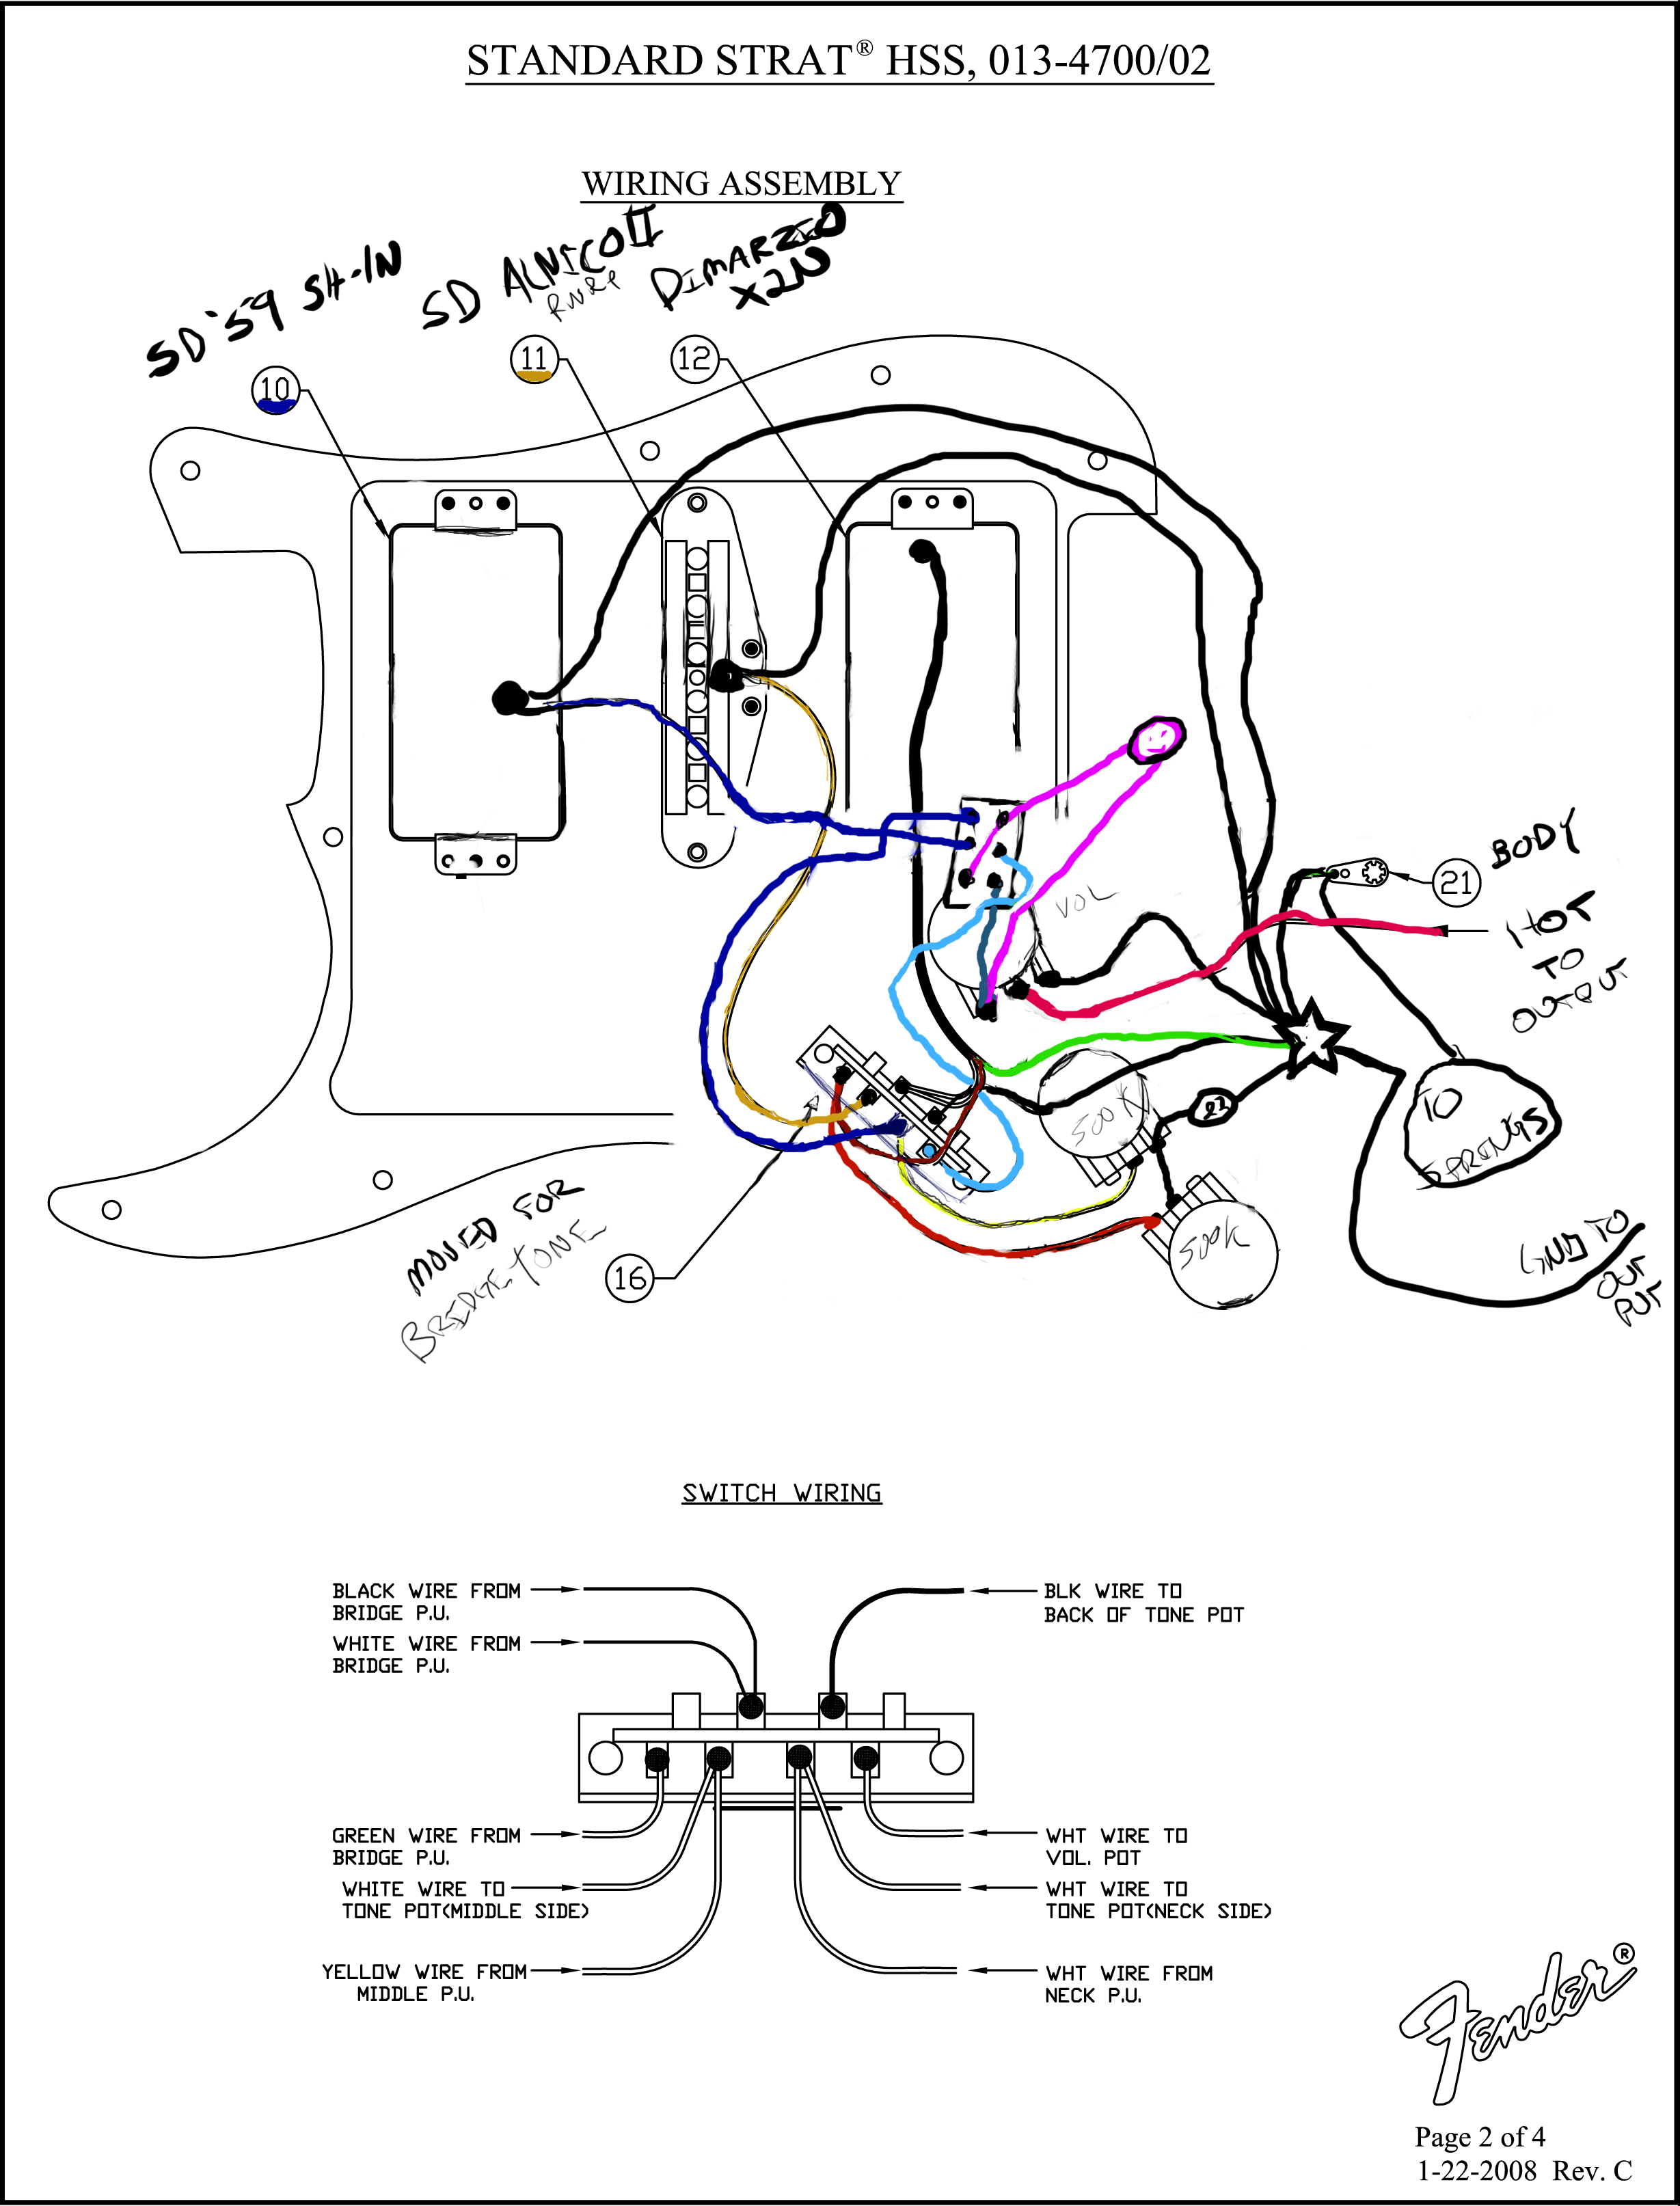 Luxury hhss wiring schematic for a guitars mold wiring diagram